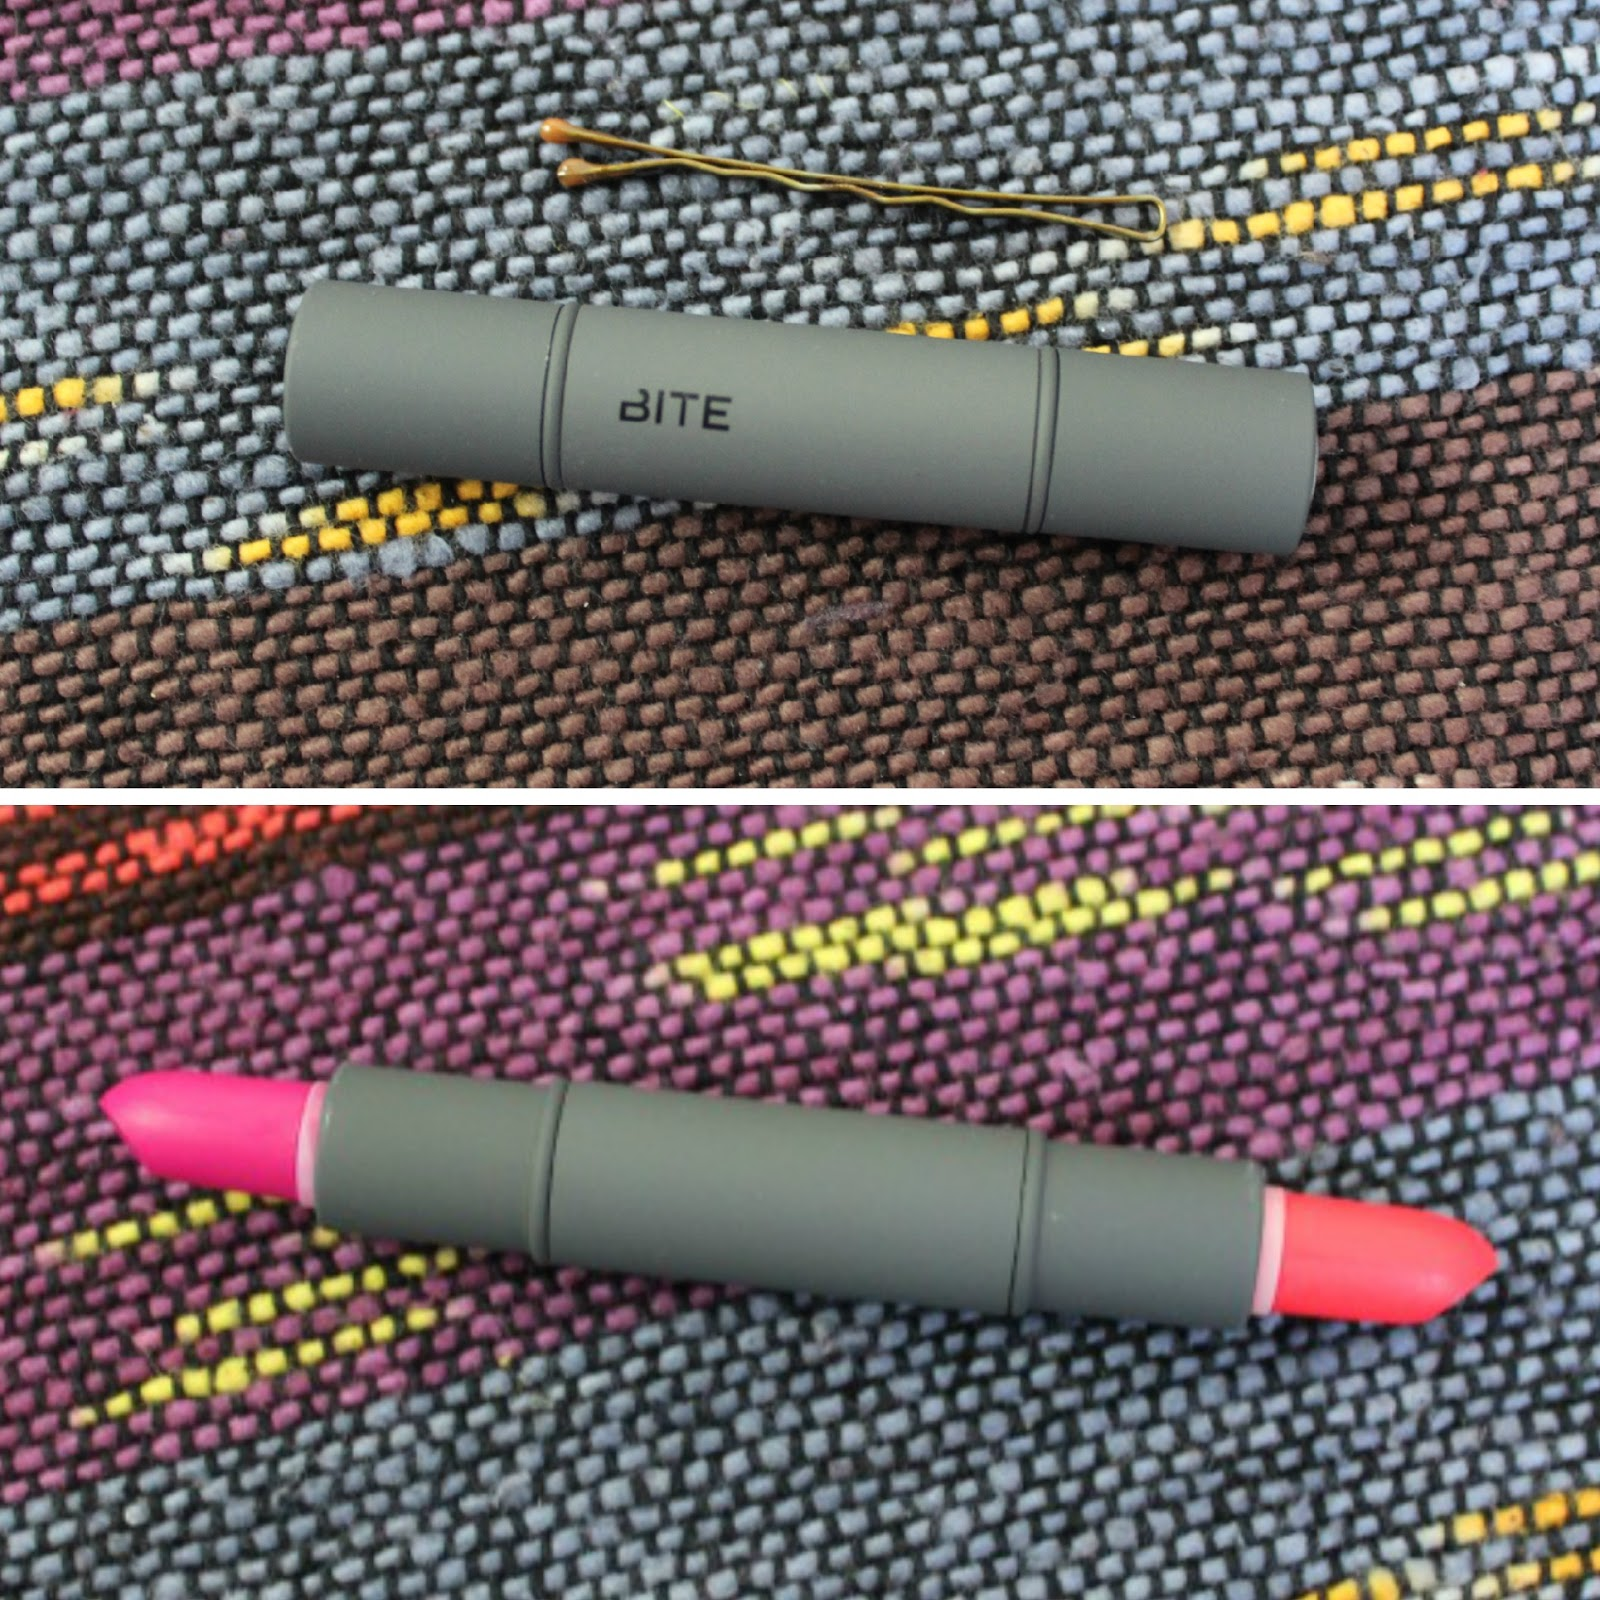 Bite Beauty Luminous Crème Lipstick Duo in Tangerine/Lingonberry size